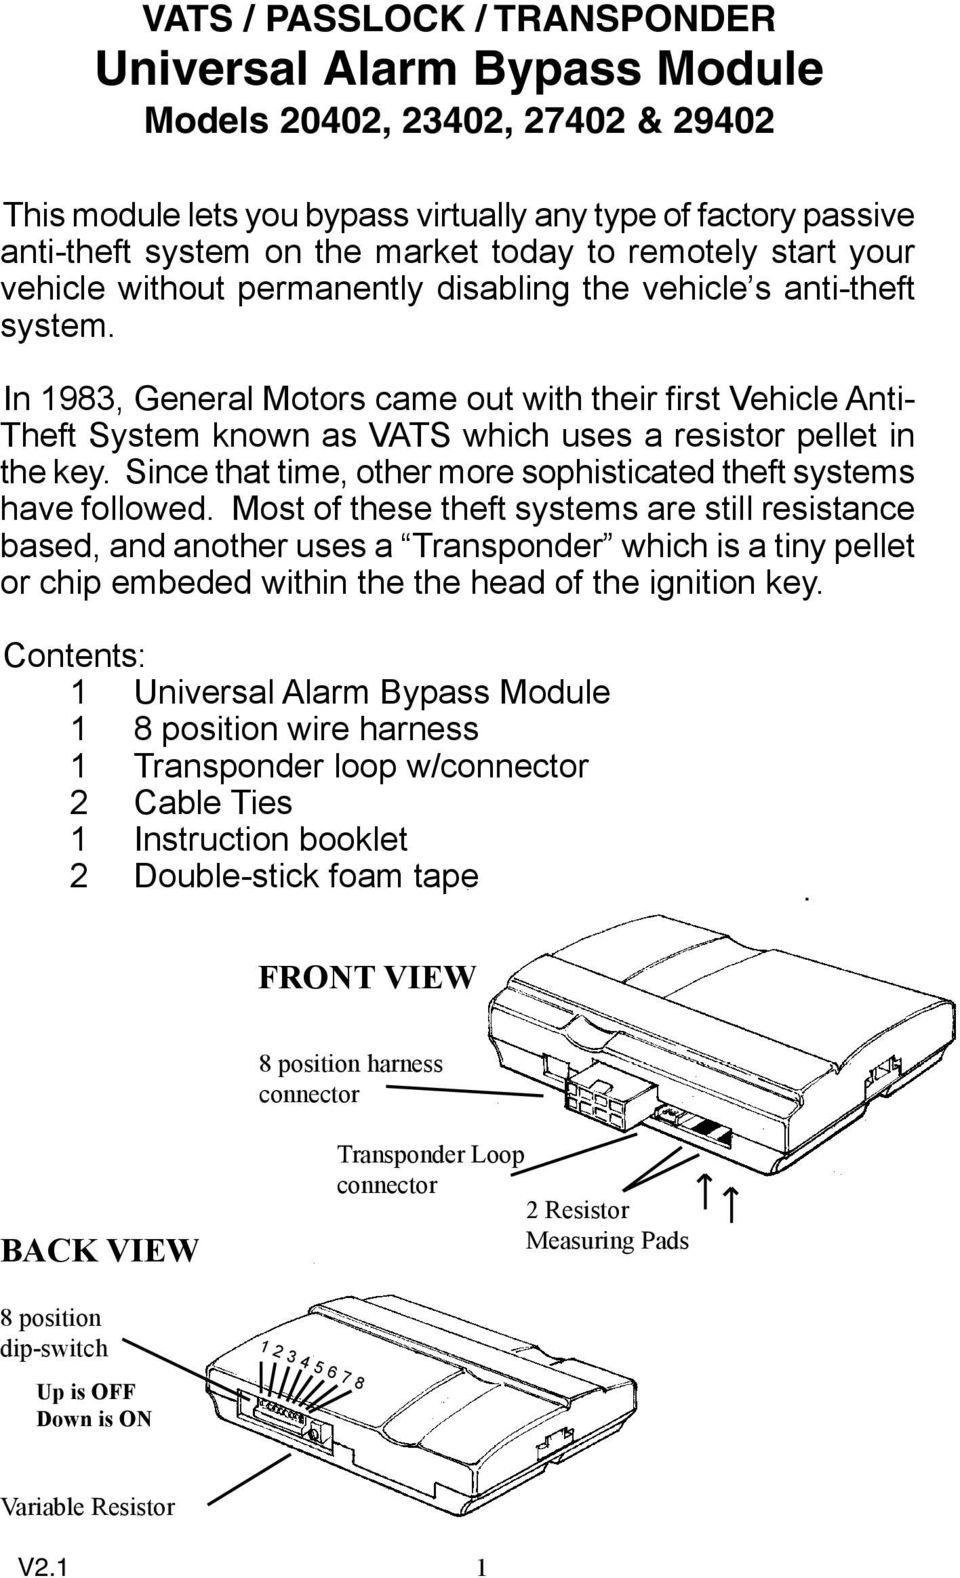 Vats Passlock Transponder Universal Alarm Bypass Module Models Ignition Key Switch Wiring Diagram On 93 Sable In 1983 General Motors Came Out With Their First Vehicle Anti Theft System Known